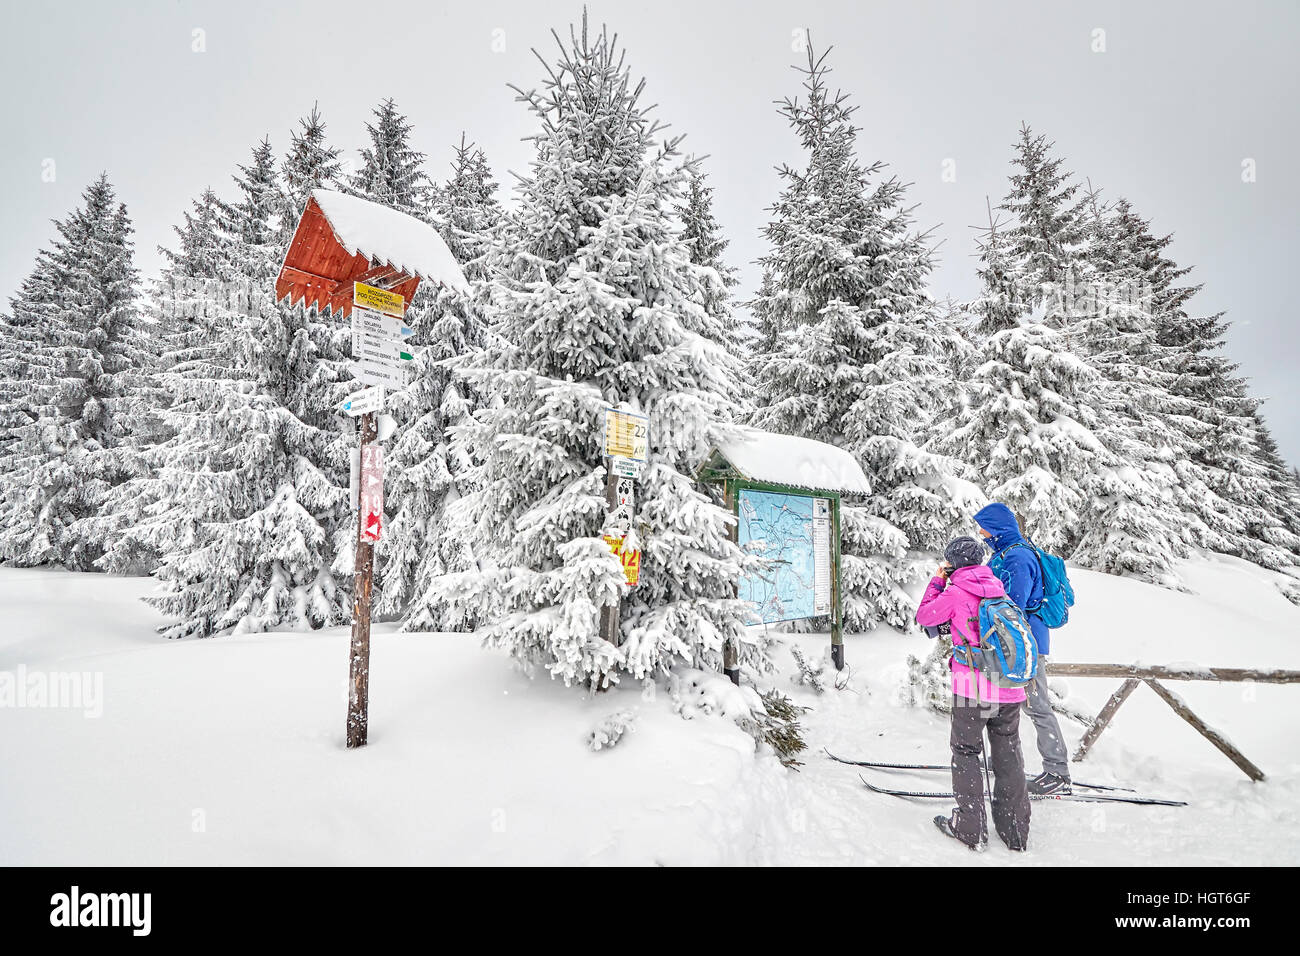 Jakuszyce, Poland - January 06, 2017: Tourist watching a trail map at cross-country skiing trail intersection. - Stock Image